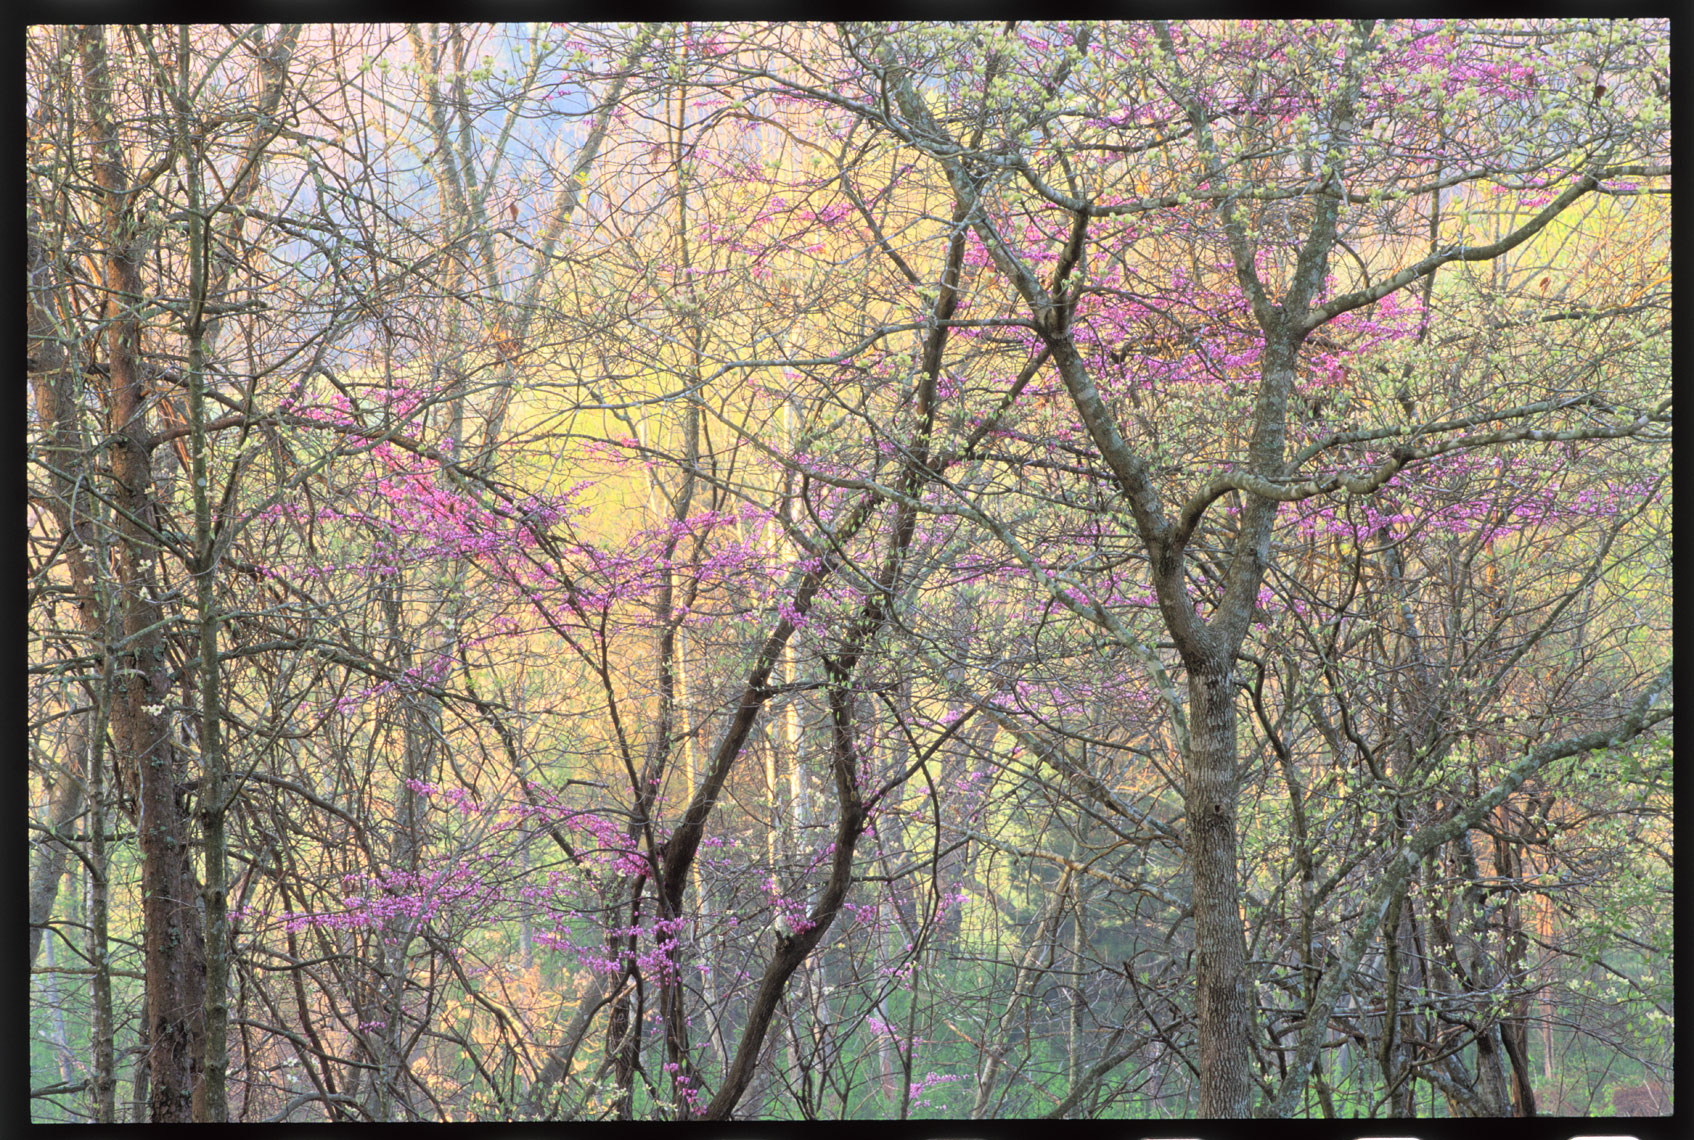 4794-purple-in-forest